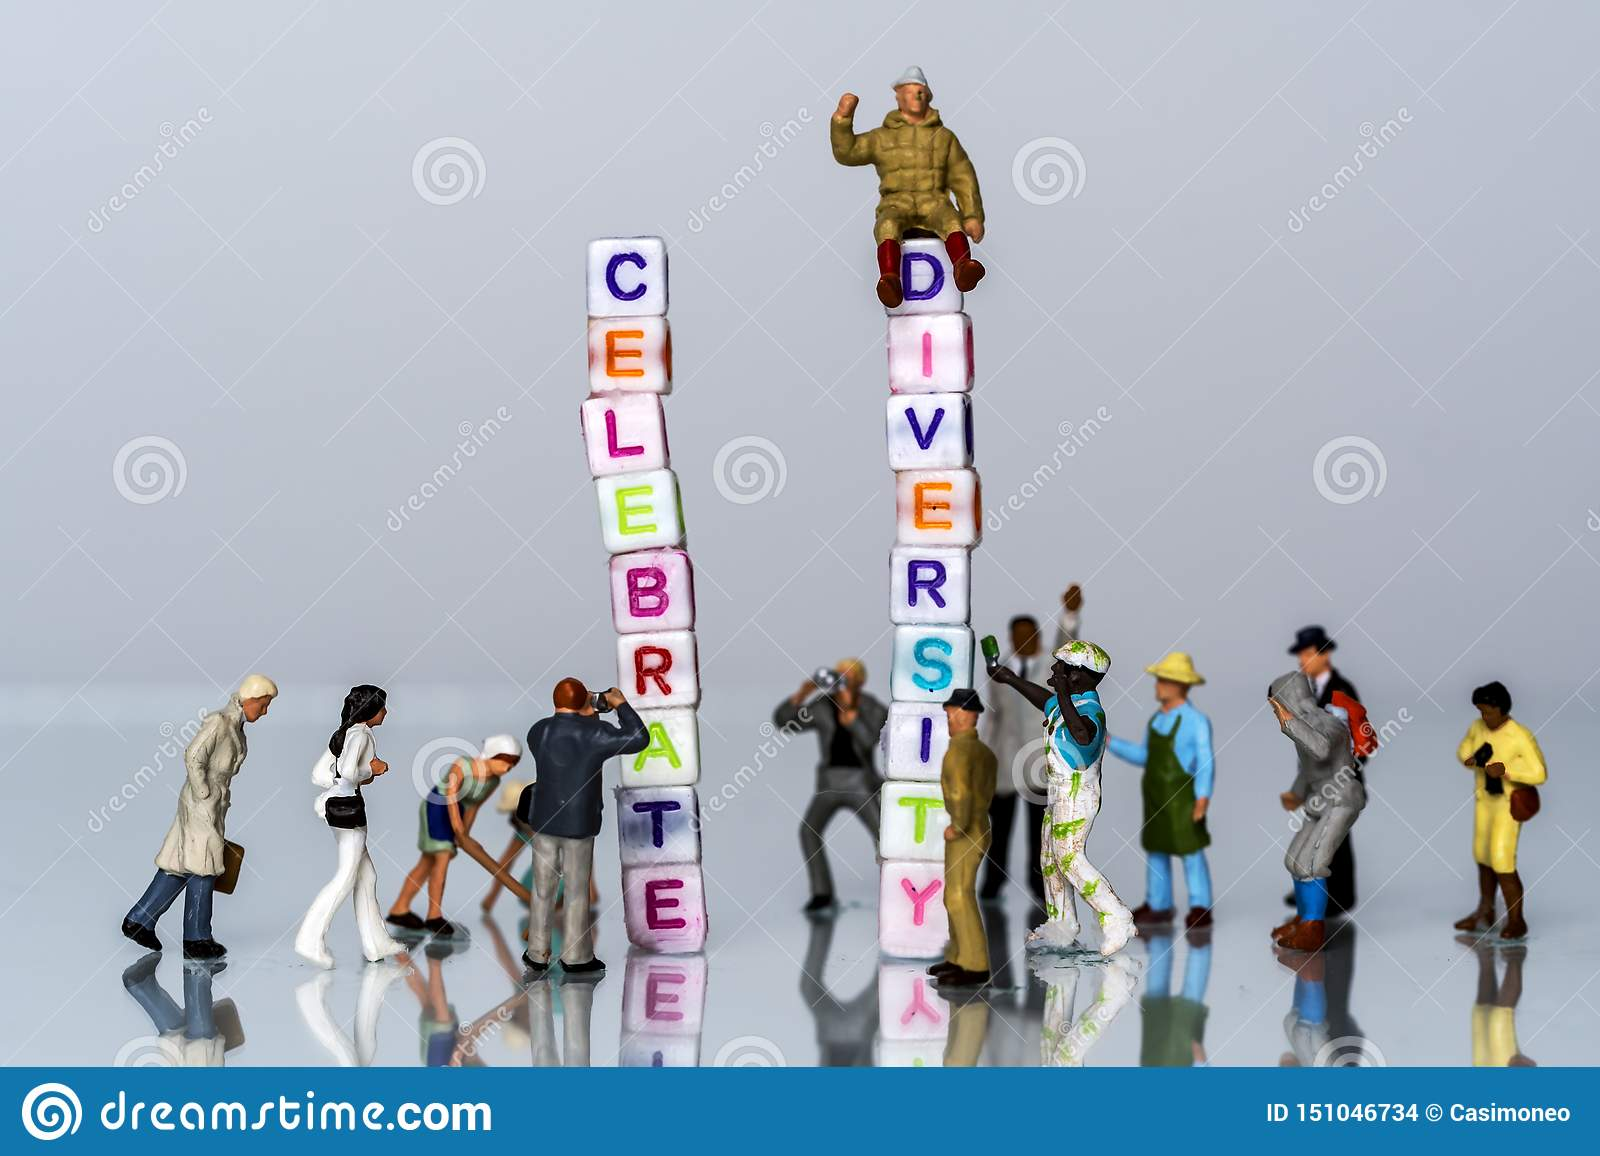 Group of Miniature diverse figurines people walking around a Group Of Letters forming Words Spelling